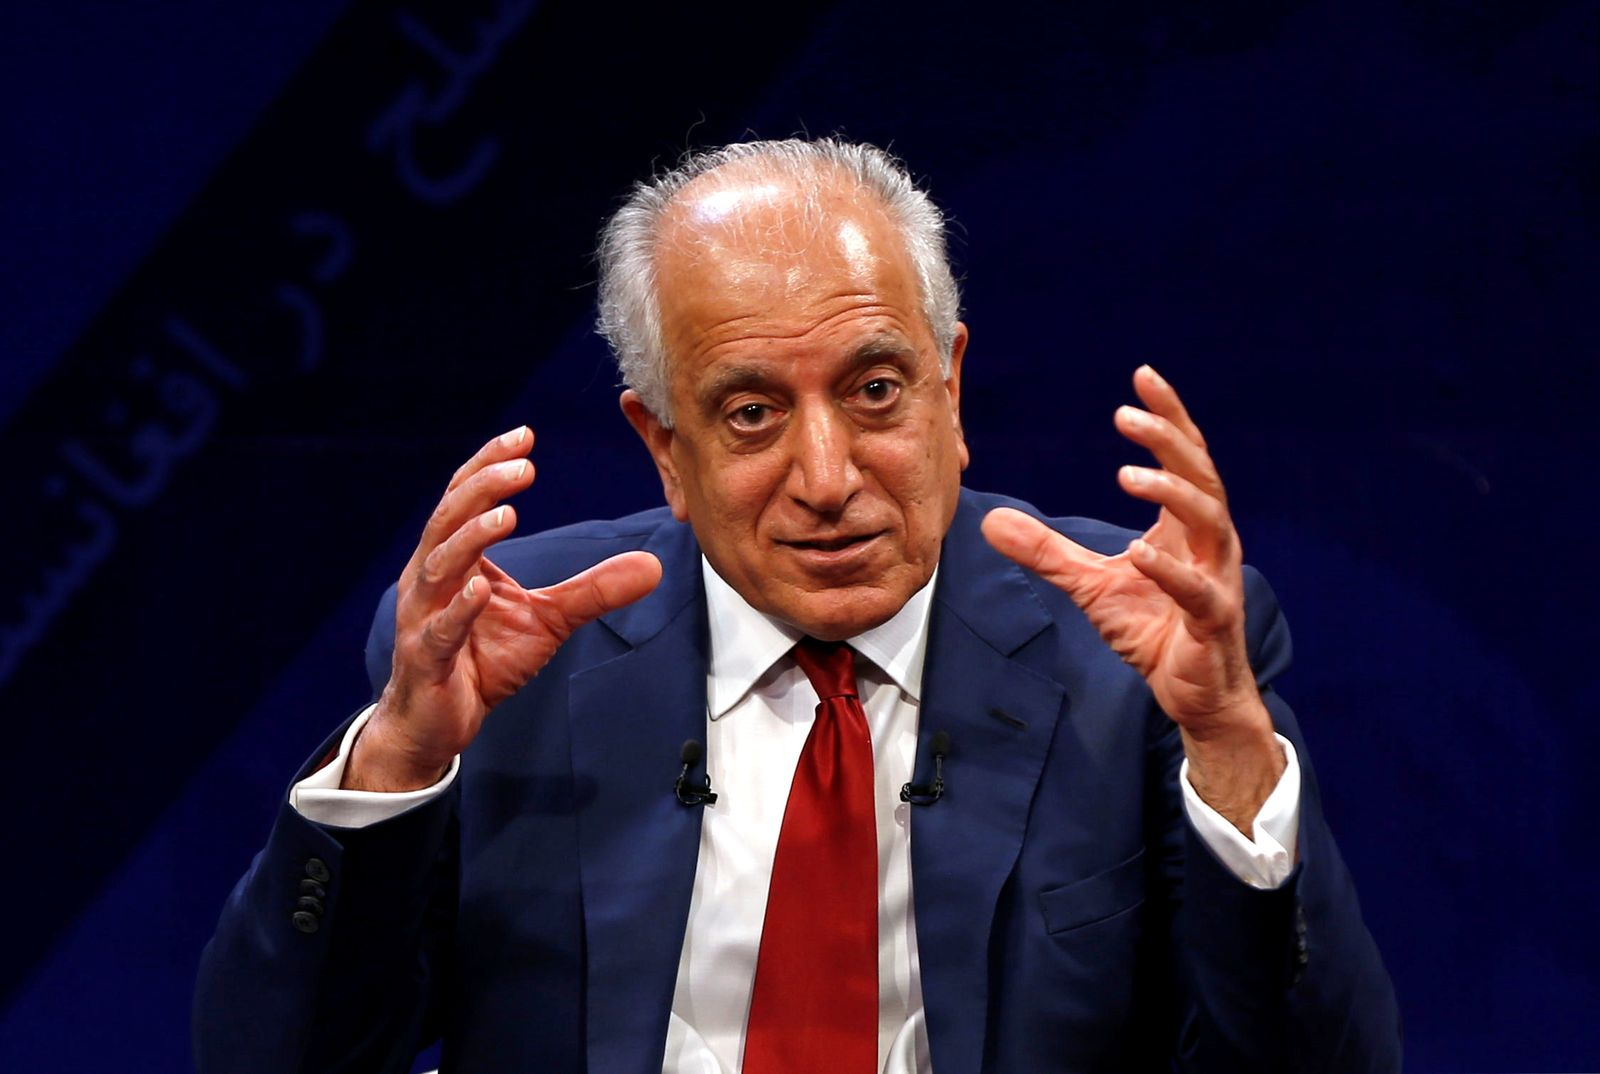 U.S. envoy for peace in Afghanistan Zalmay Khalilzad speaks during a debate at Tolo TV channel in Kabul